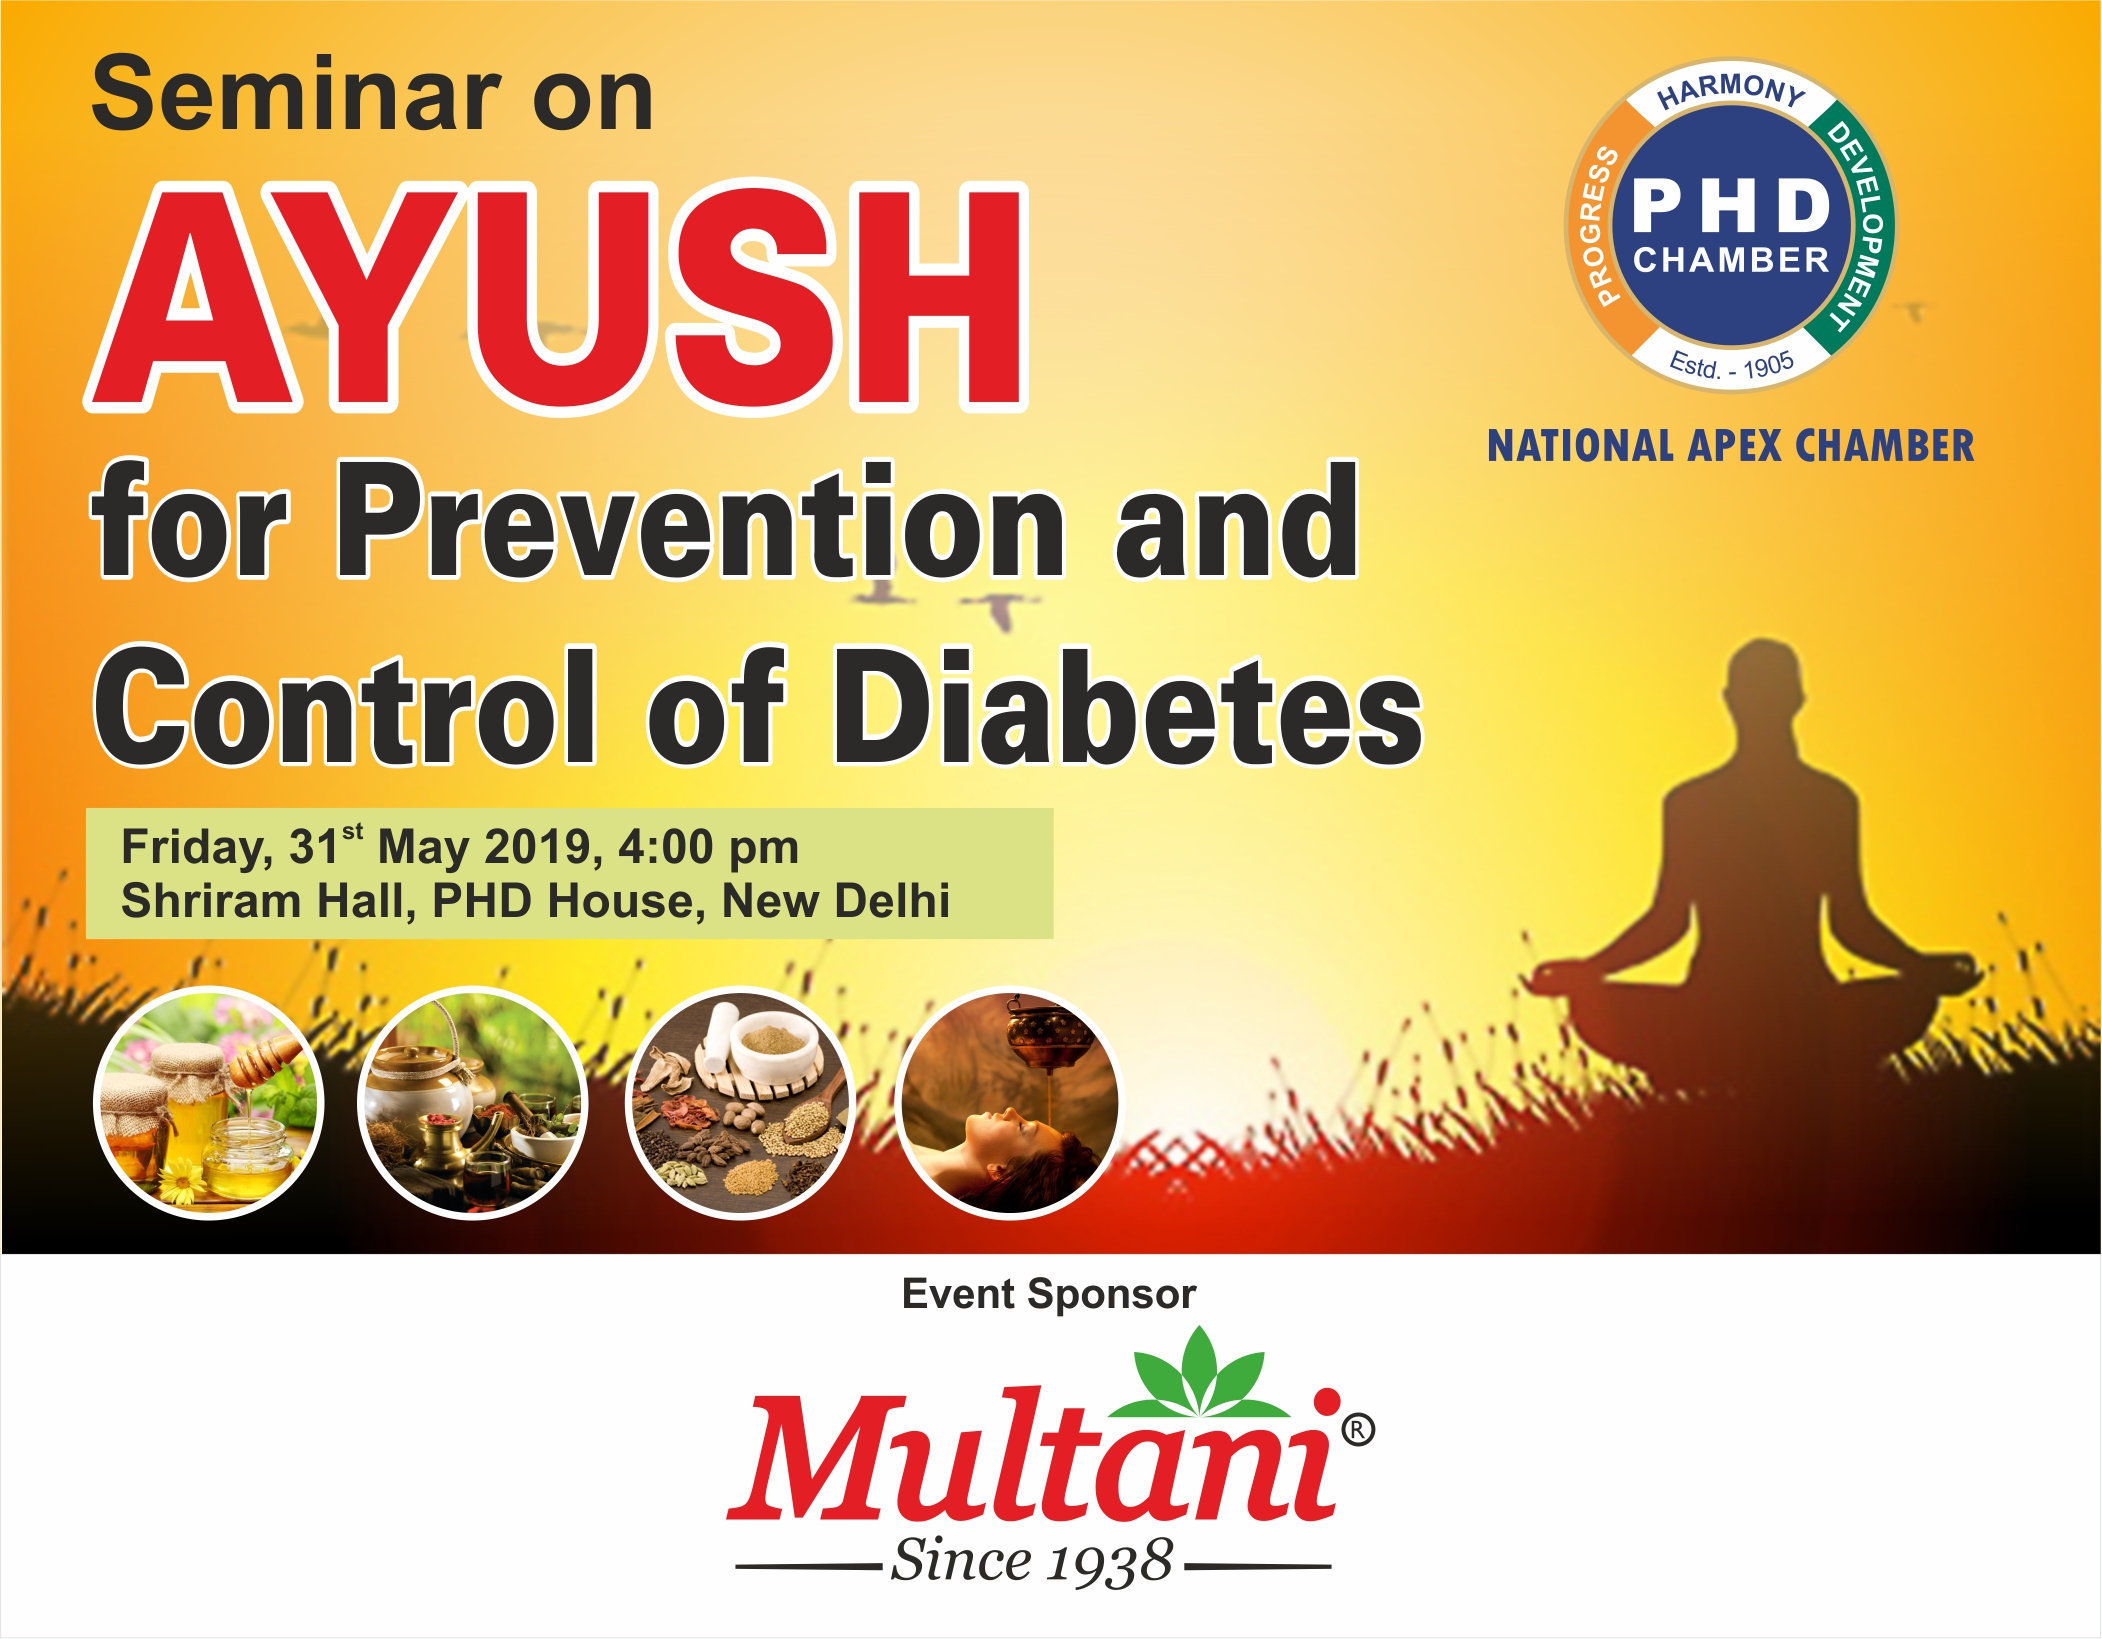 Seminar on AYUSH for Prevention and Control of Diabetes